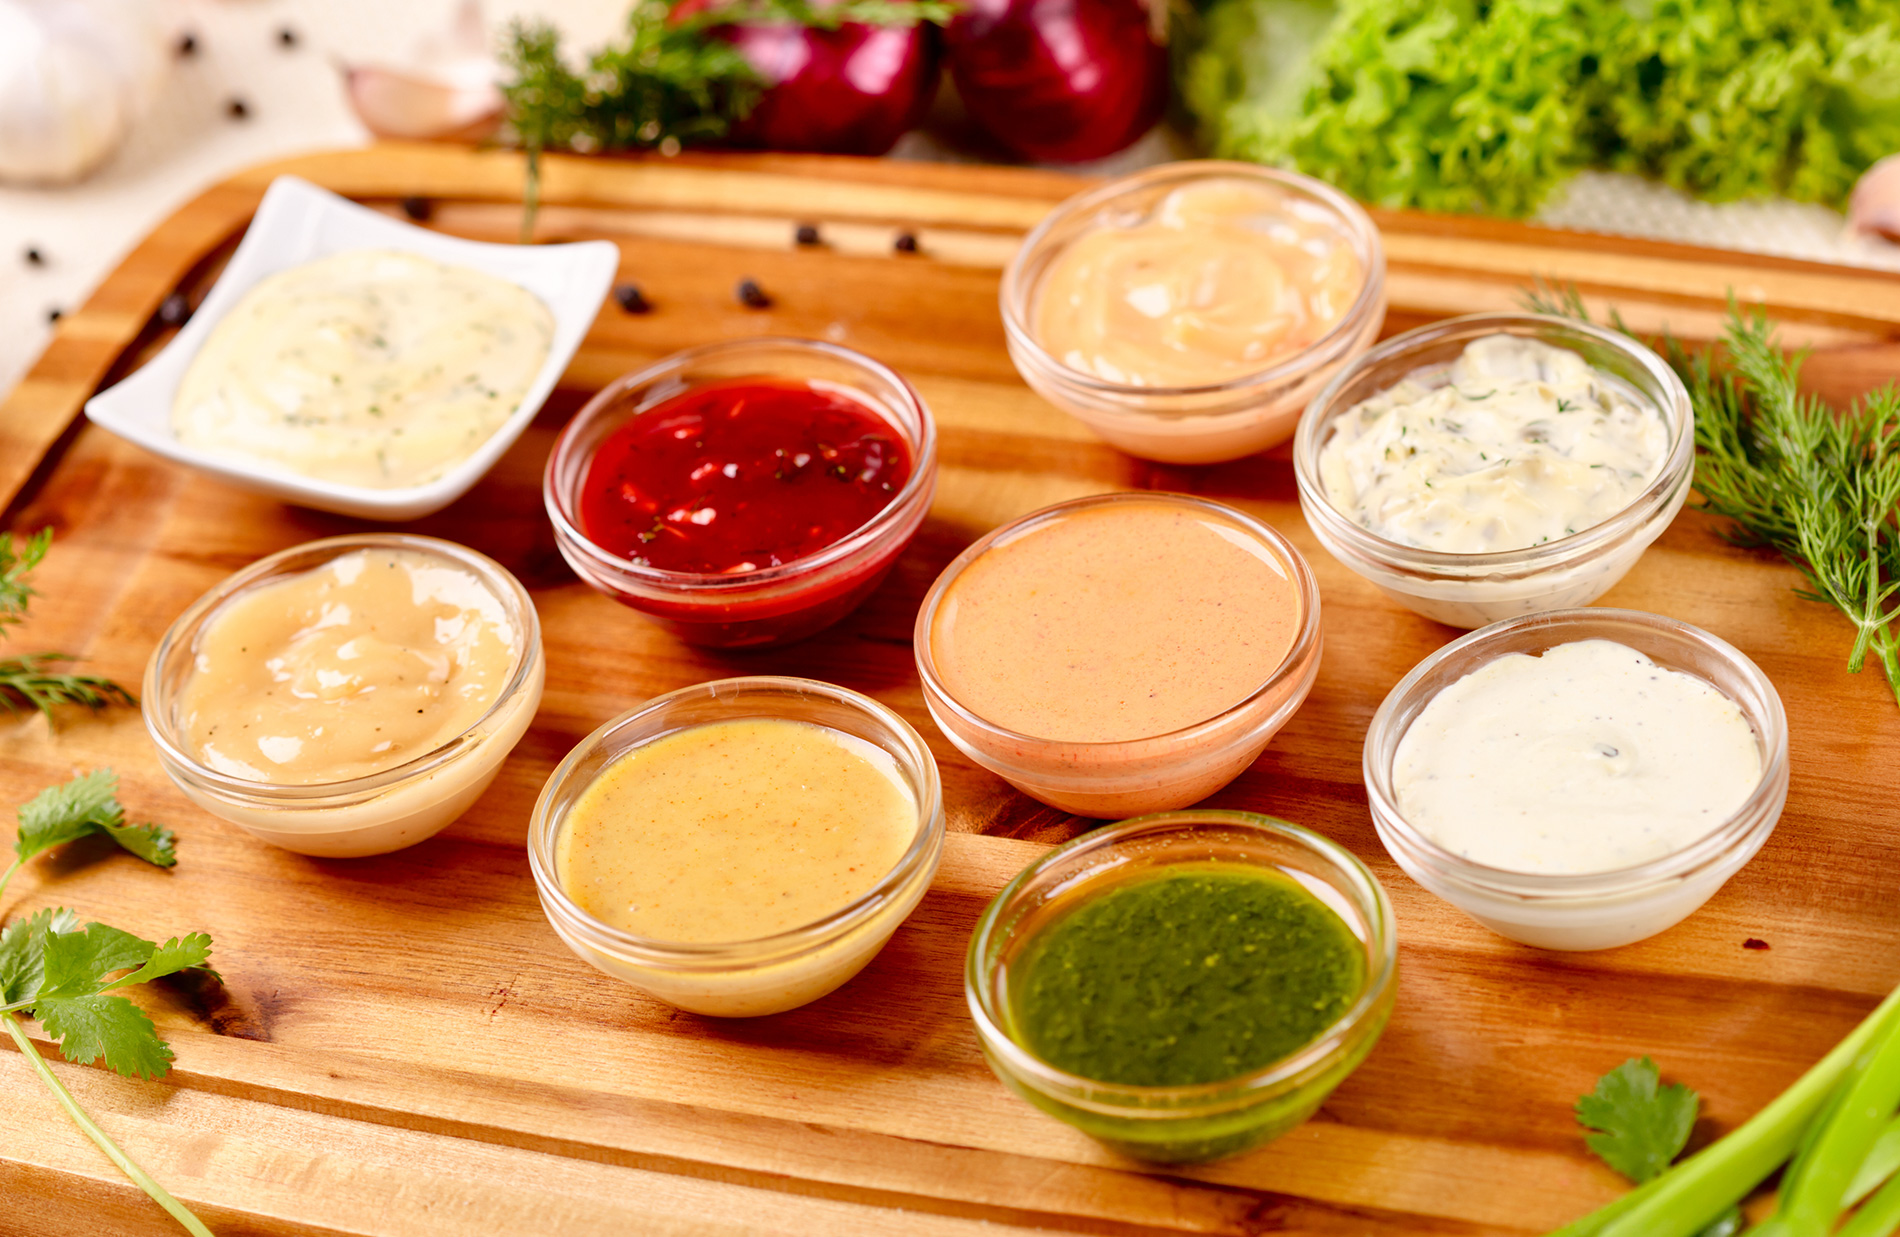 Salsas De Cocina Receta Fit Salsas Naturales Eat Andfit Abc Blogs